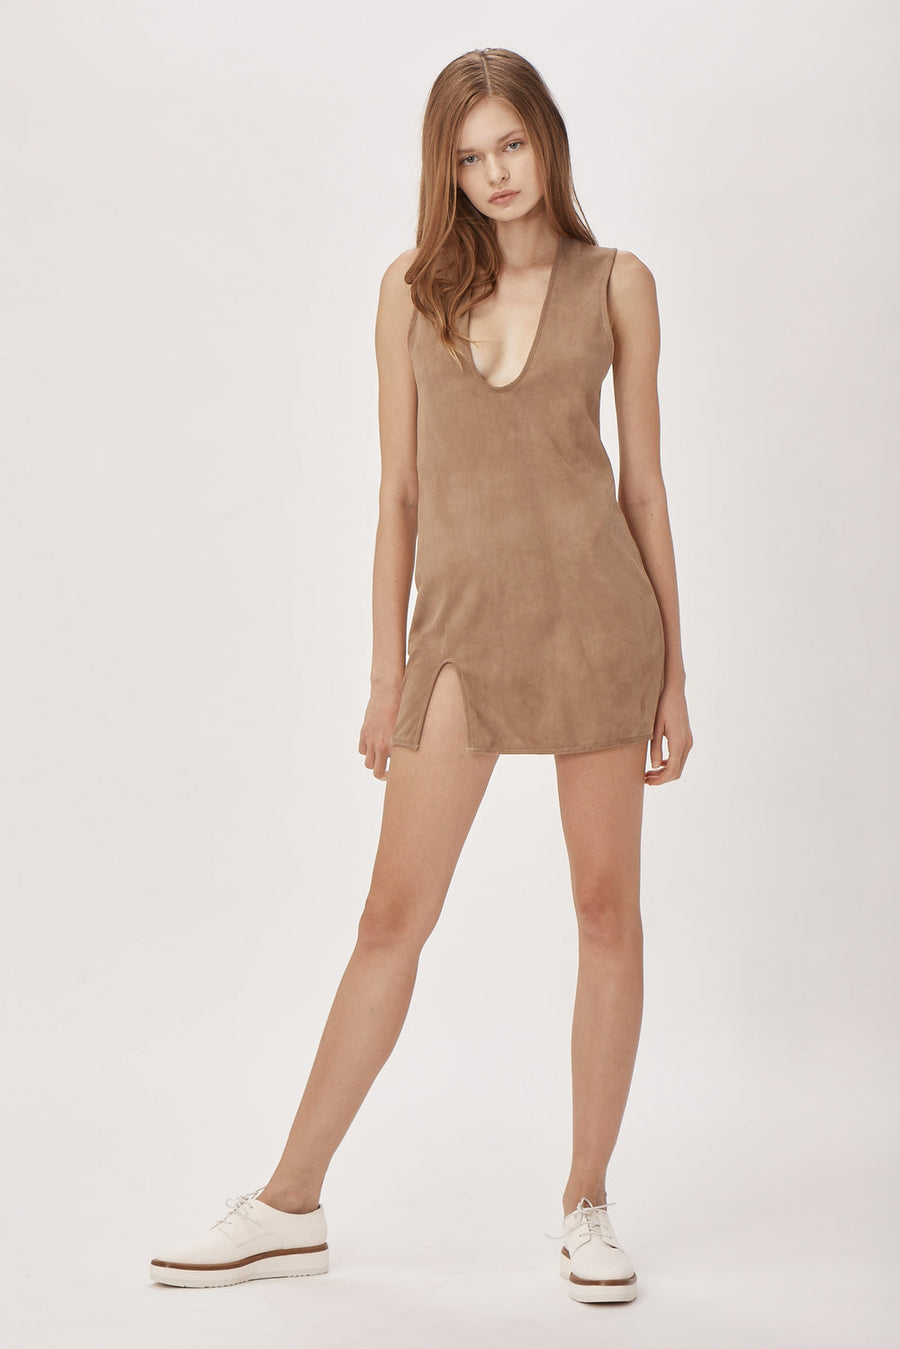 Frankie Suede Dress